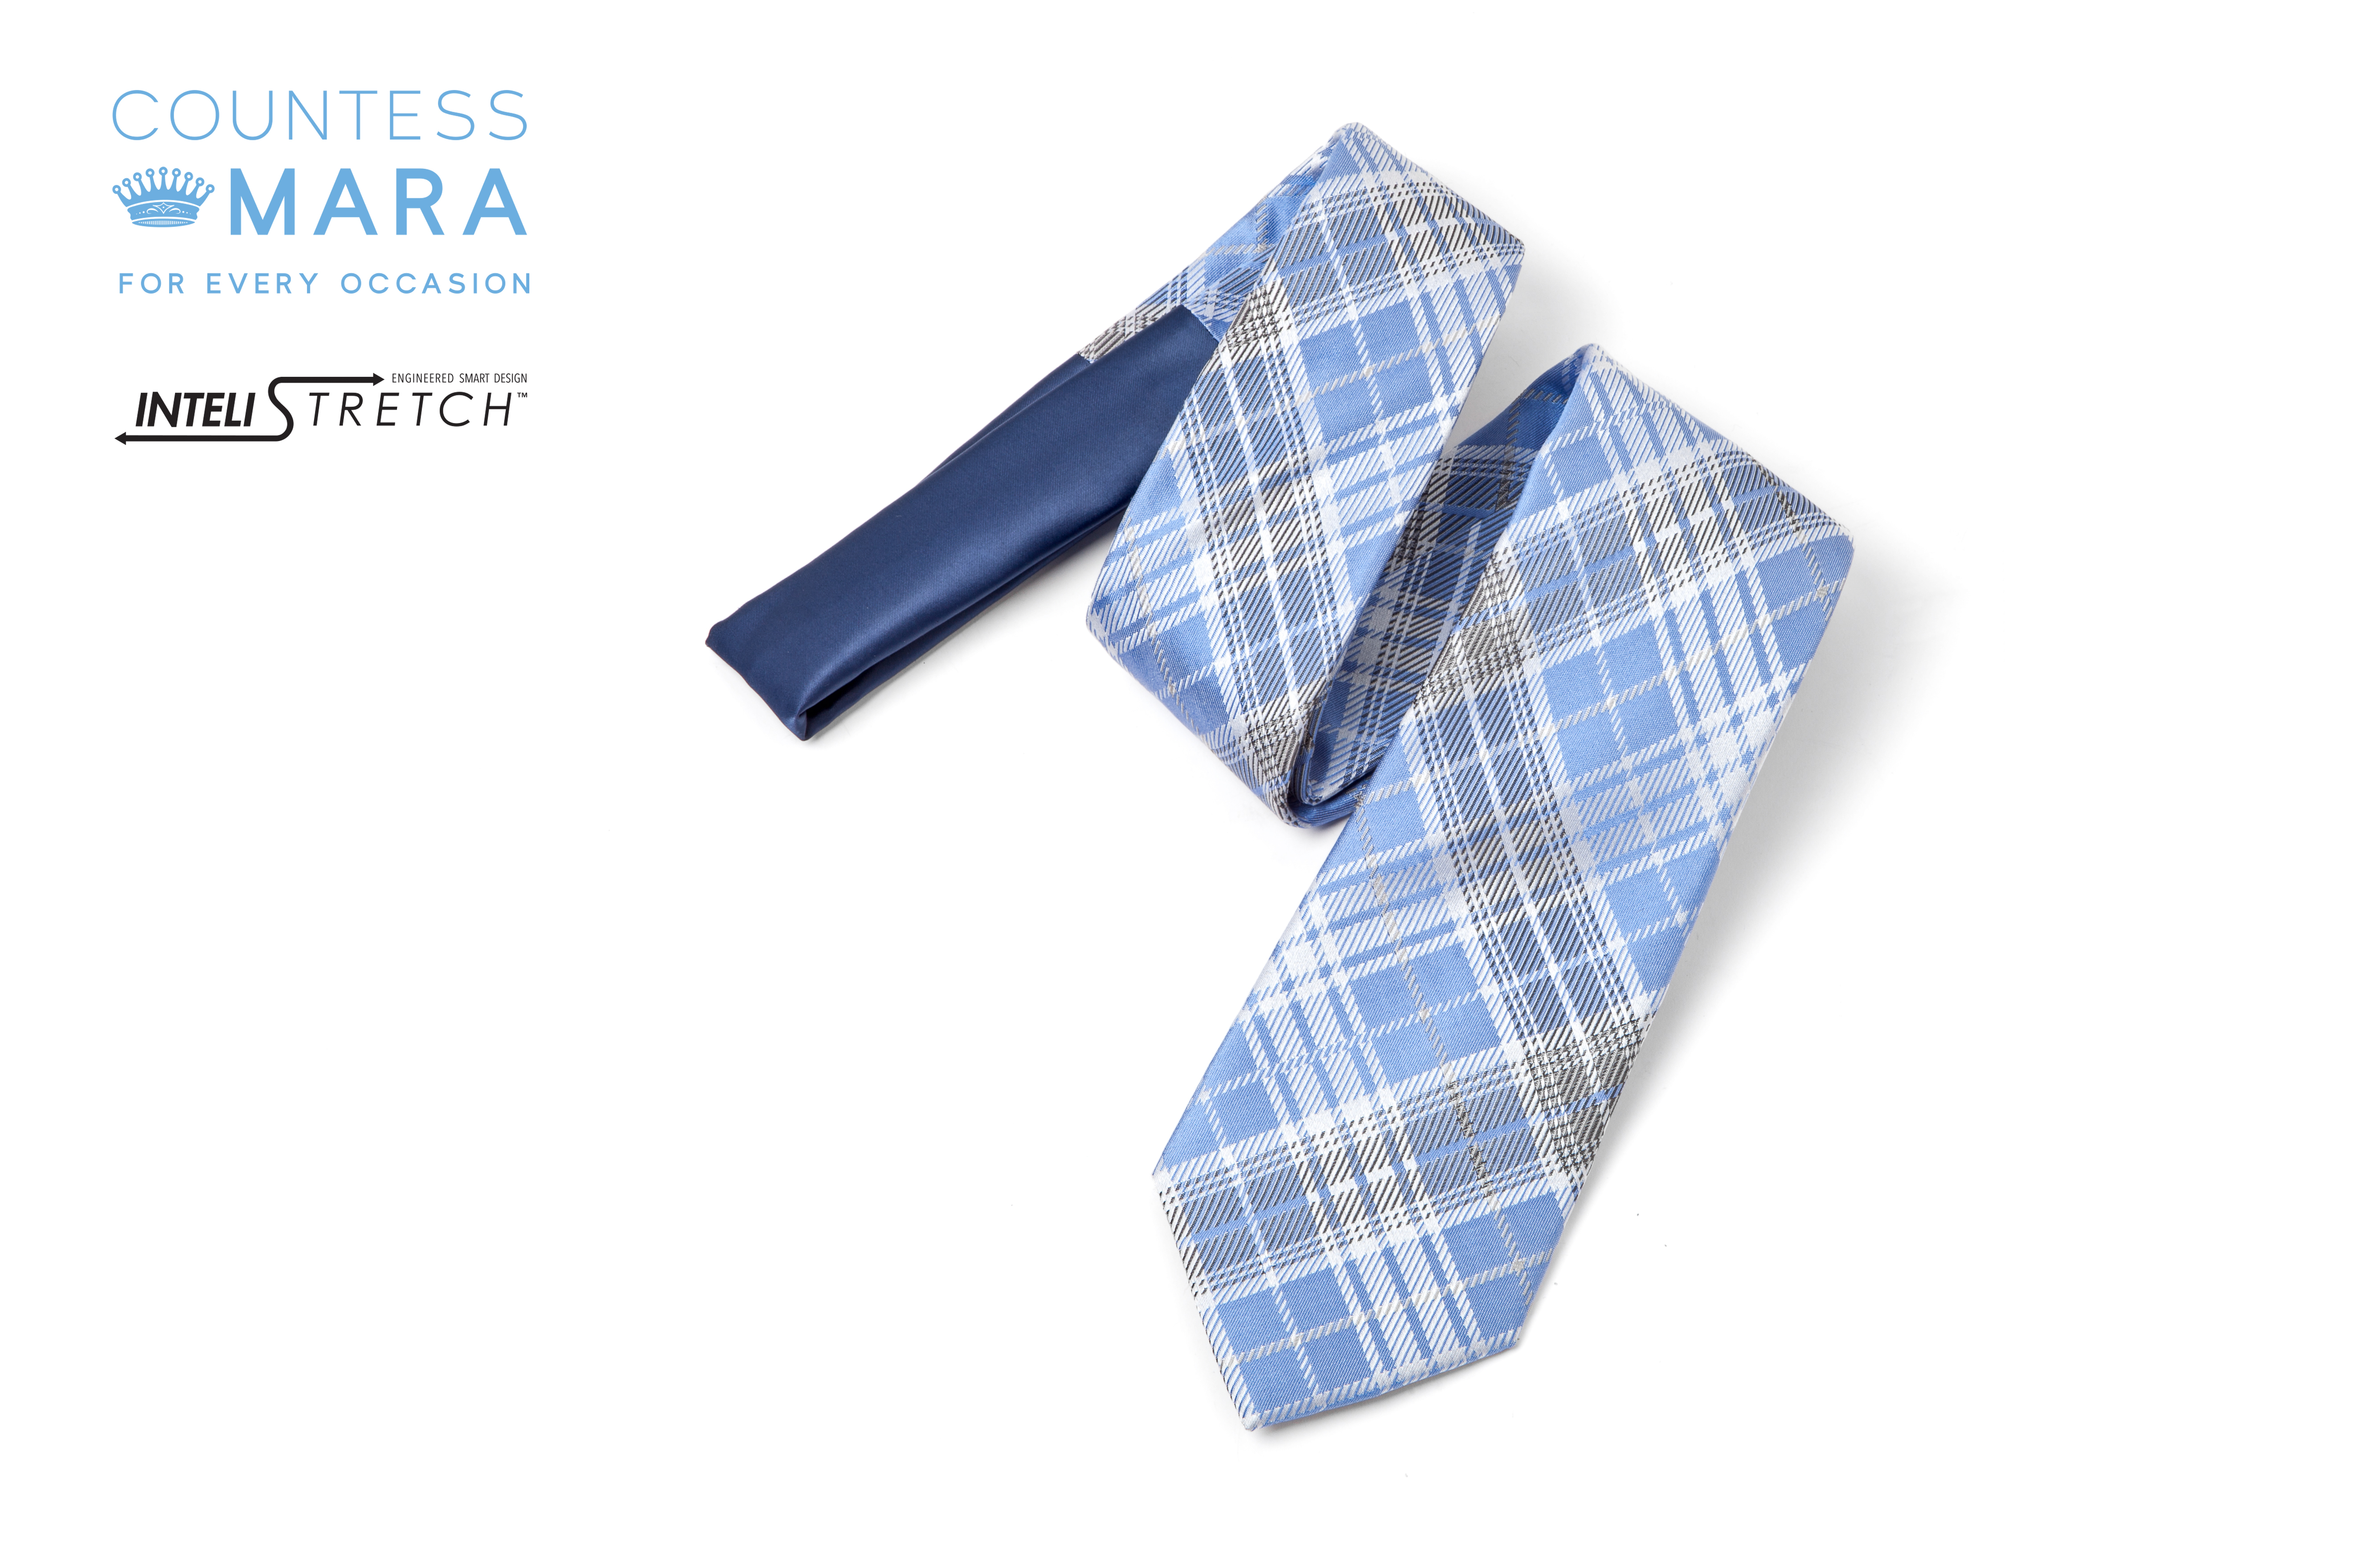 The Countess Mara tie with InteliStretch technology.